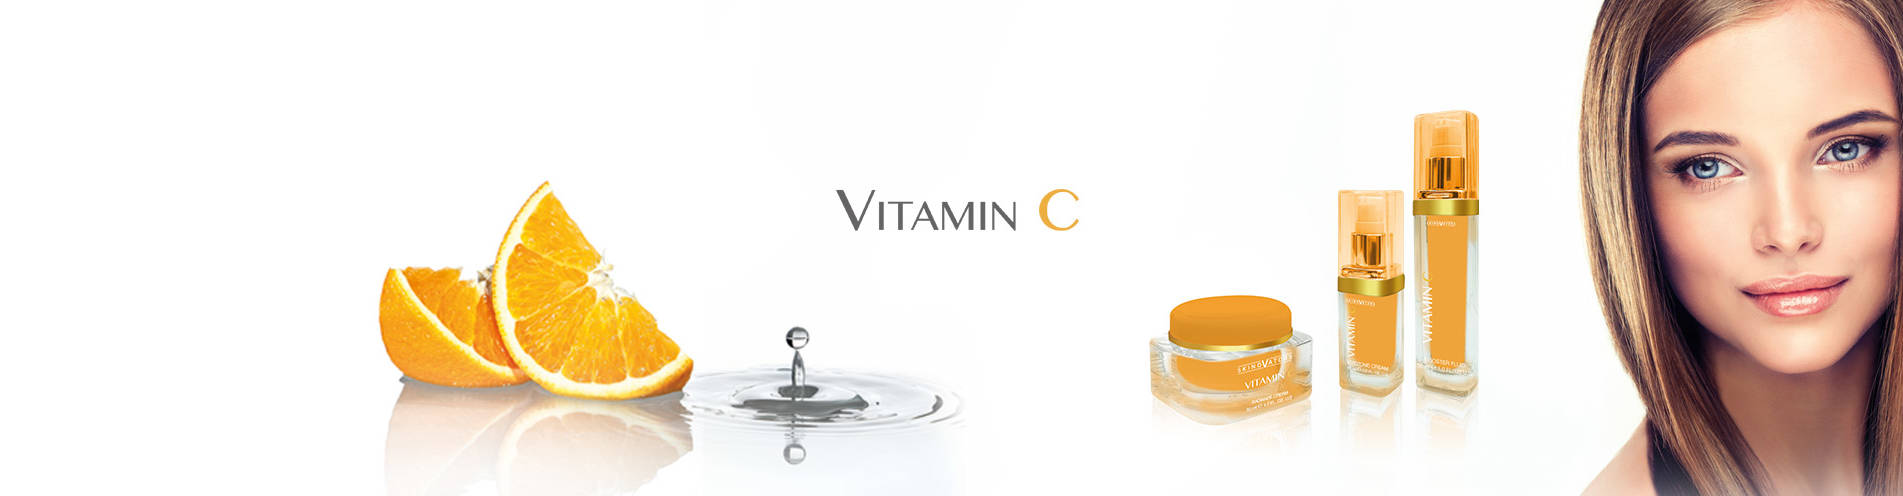 Your brand name or label on Vitamin C cosmetic Private Label Cosmetics German Manufacturer